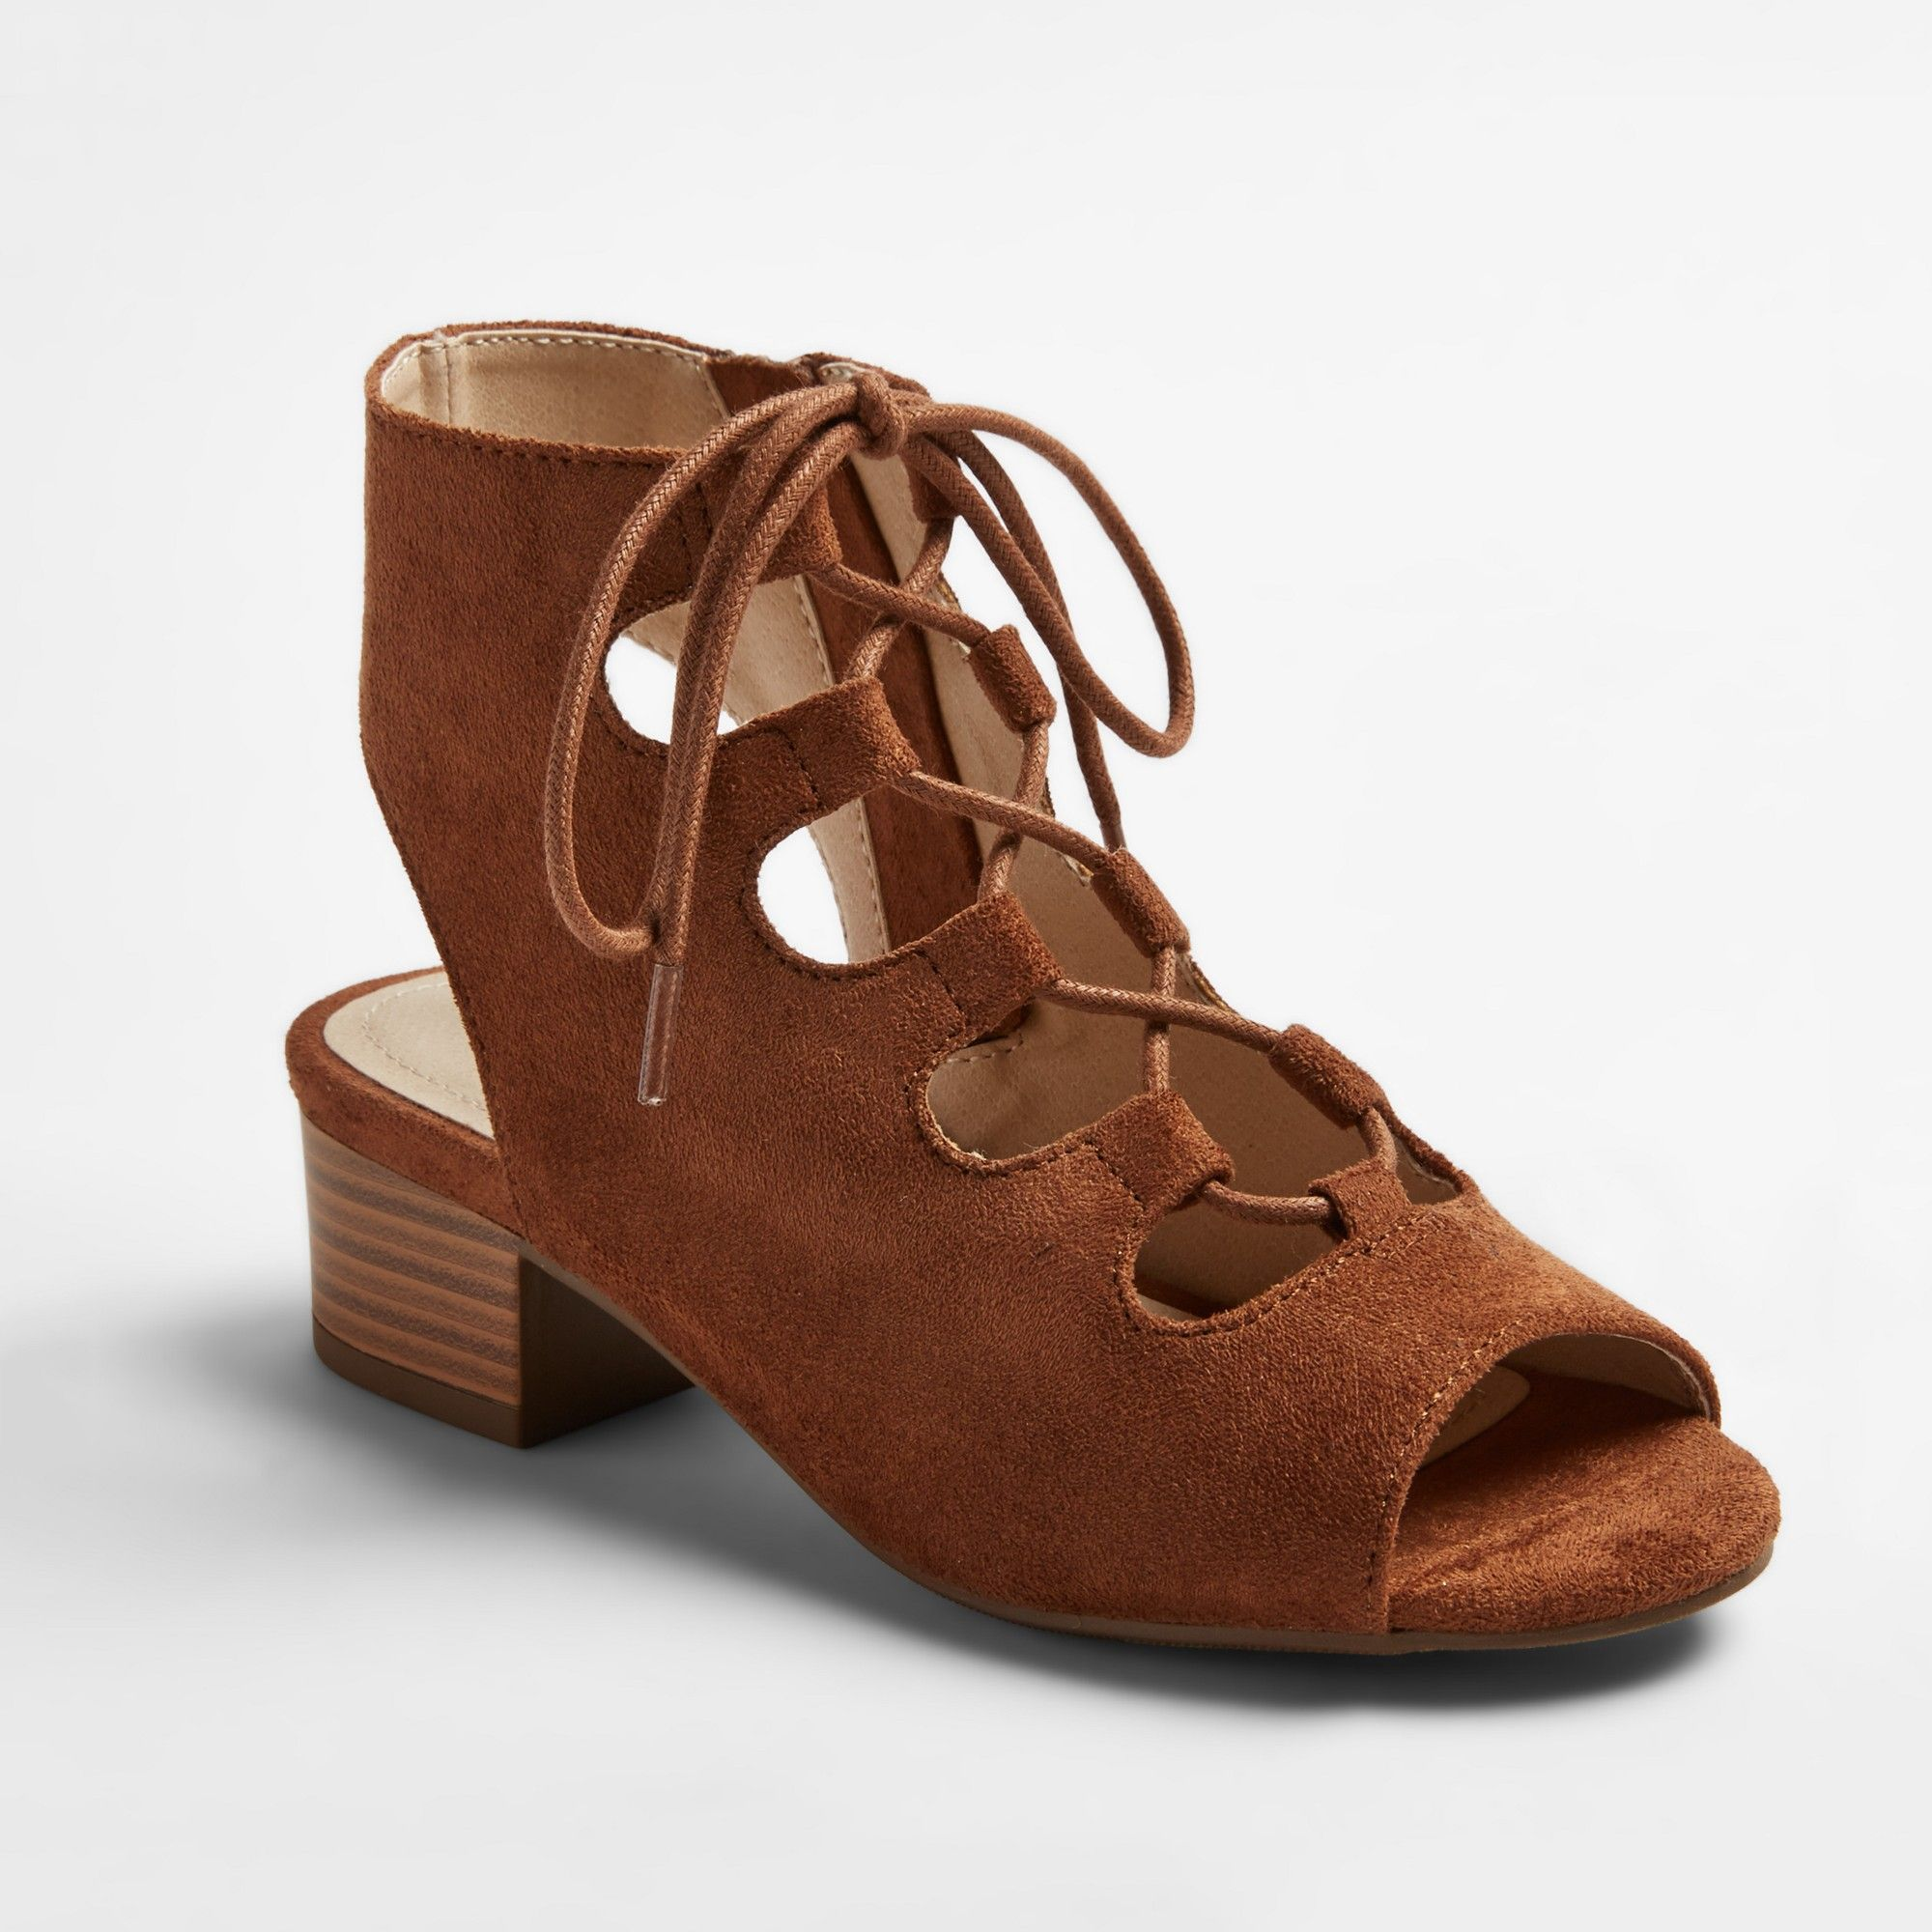 f5971e93ef06 Girls  Stevies  ohmy Heeled Gladiator Sandals - Chestnut (Brown) 13 ...